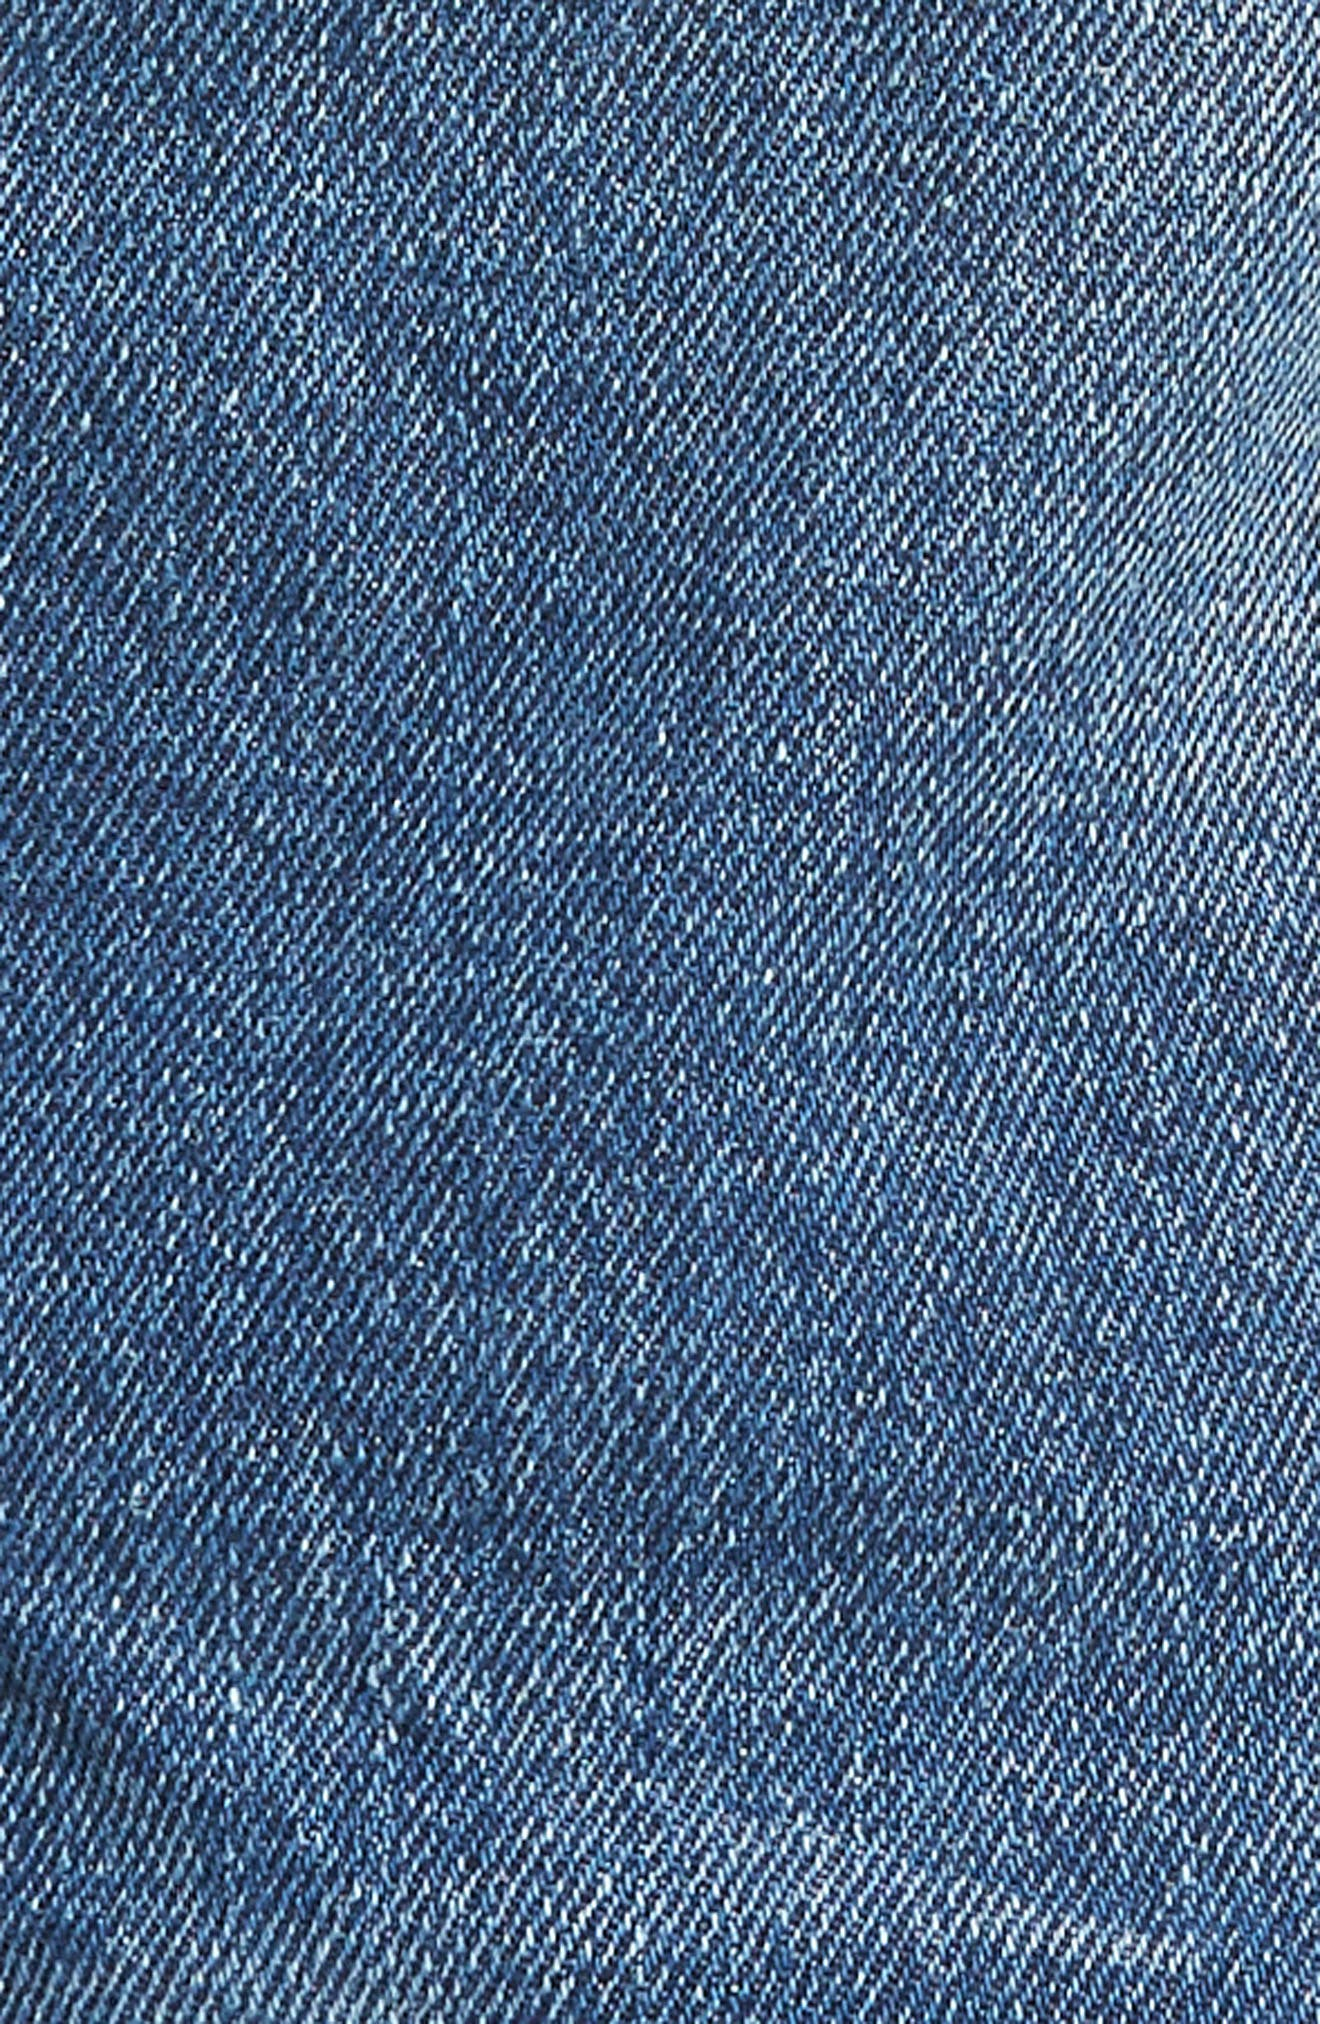 PRPS,                             Le Sabre Tapered Fit,                             Alternate thumbnail 5, color,                             5 YEAR WASH